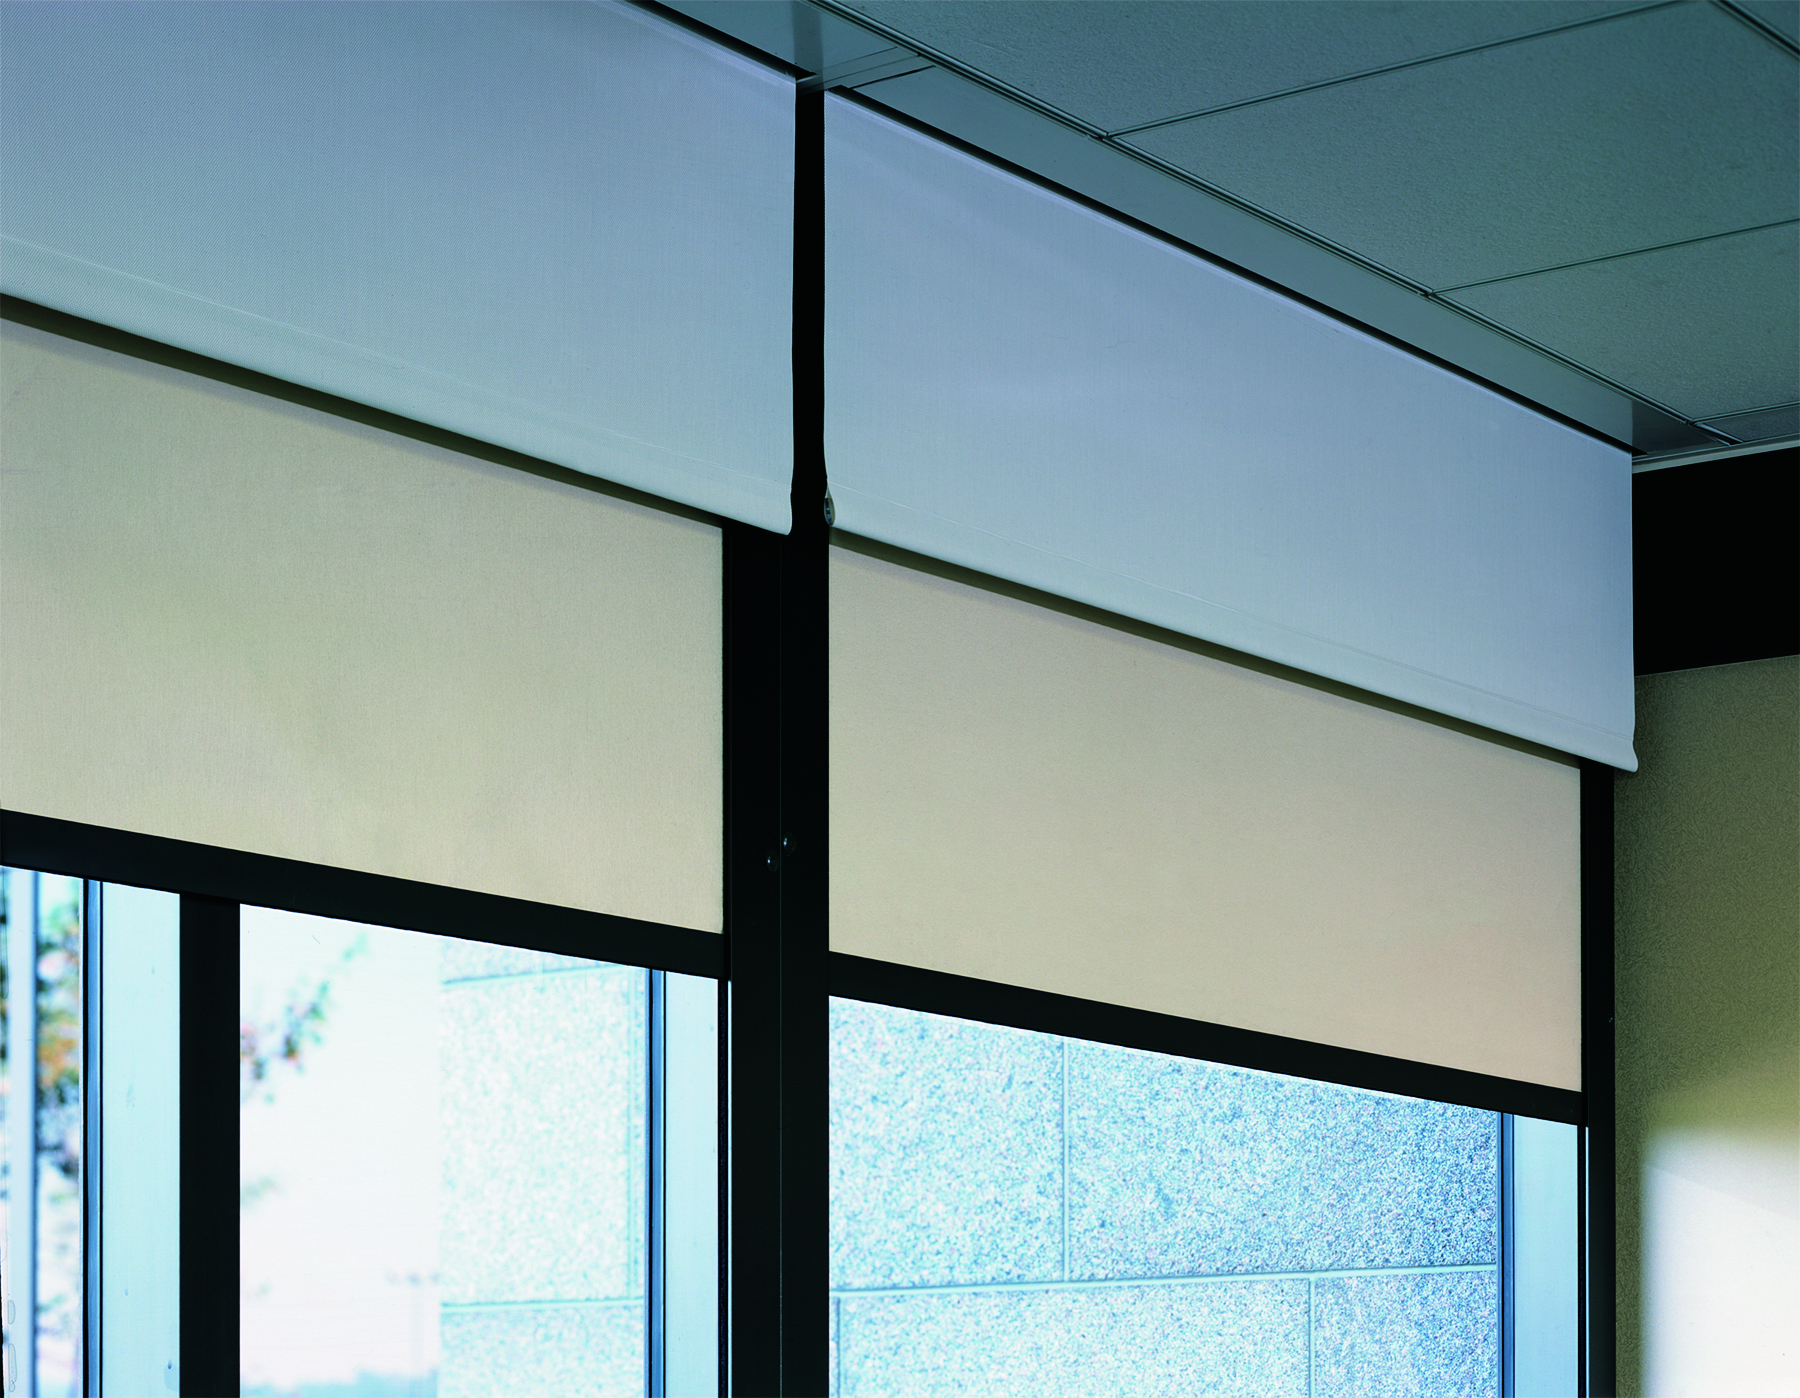 1 2 3 4 13 14 15 for 12 500 commercial window coverings inc